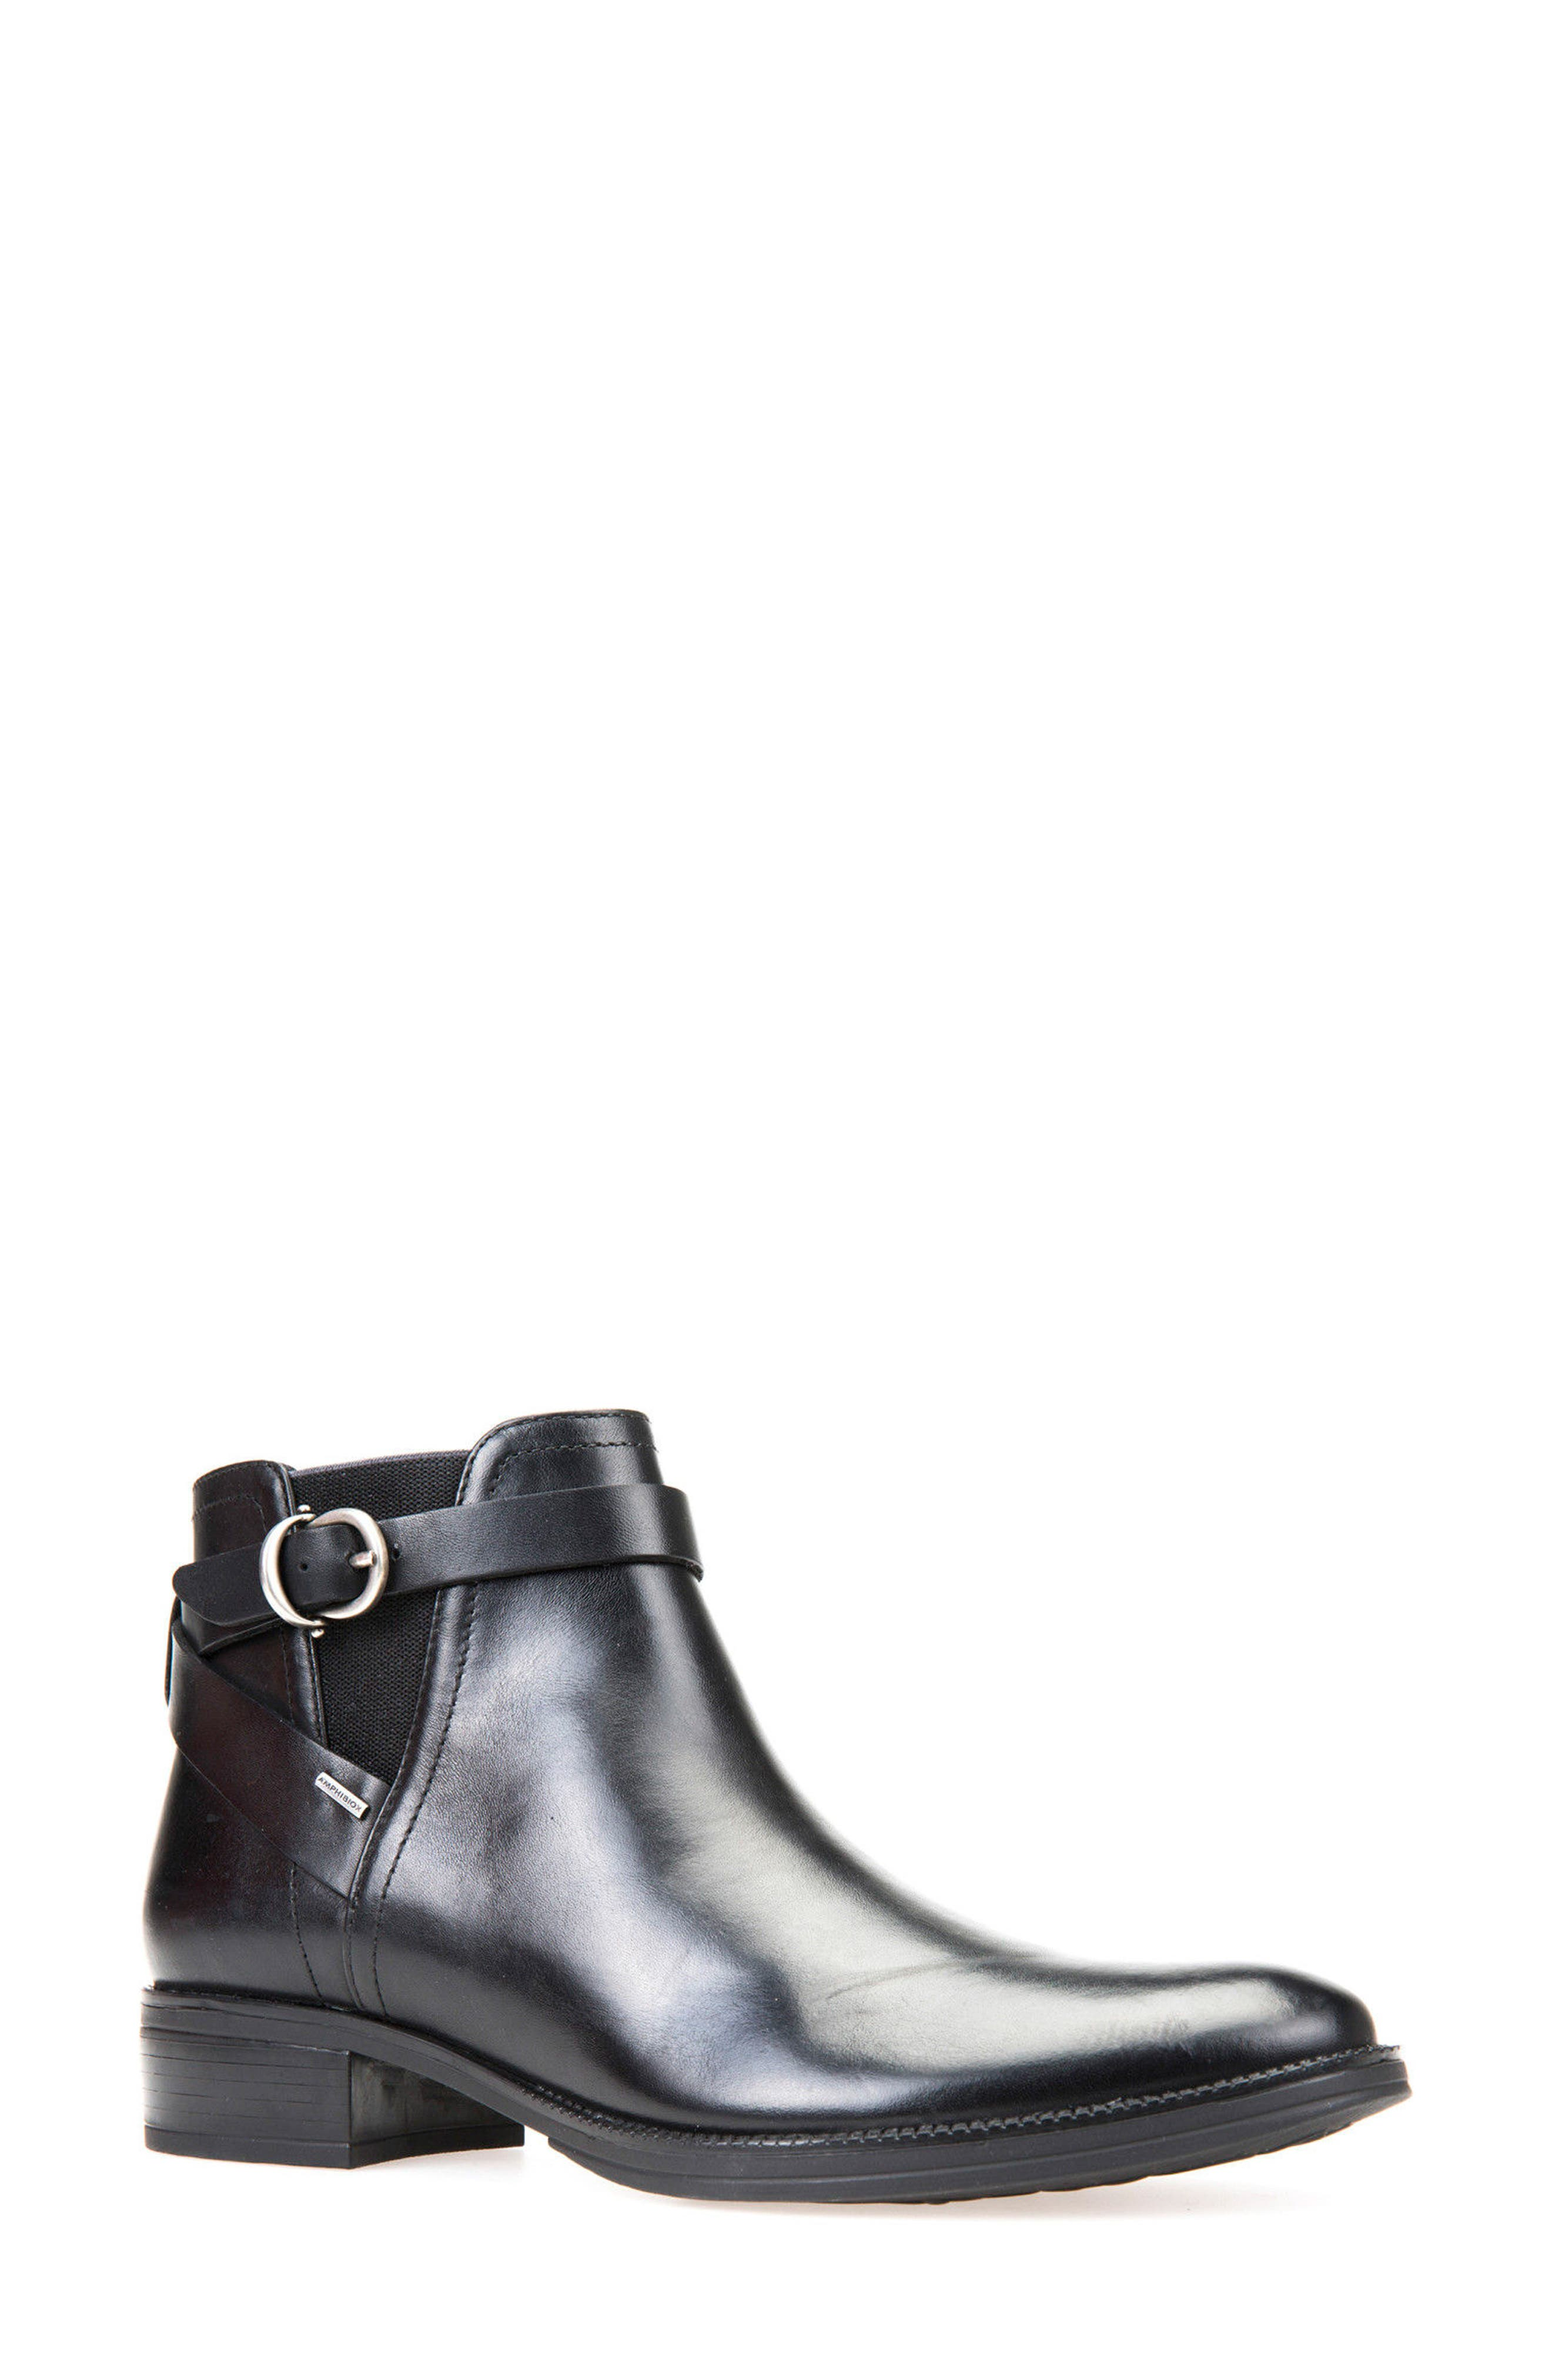 Alternate Image 1 Selected - Geox Mendi ABX Waterproof Bootie (Women)